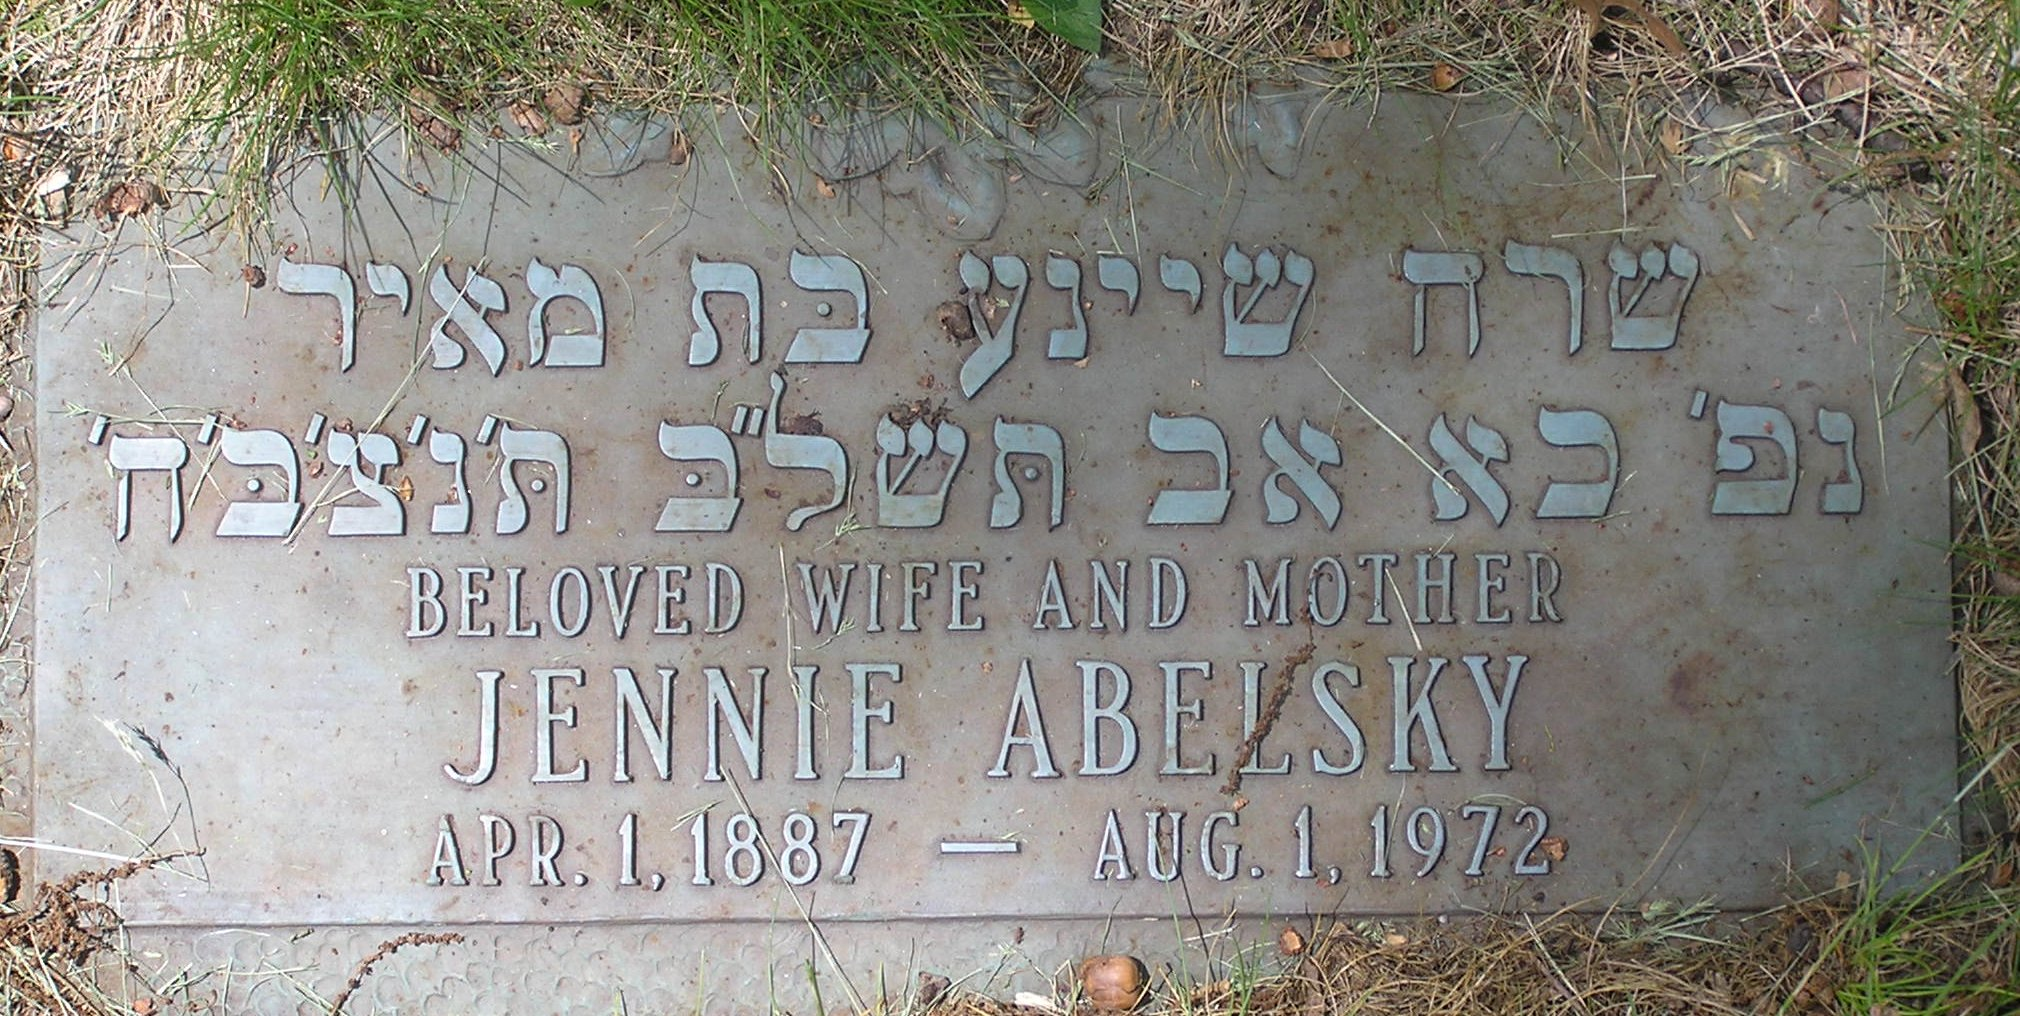 Jenny Greece Abelsky (1888 - 1972) - Find A Grave Memorial